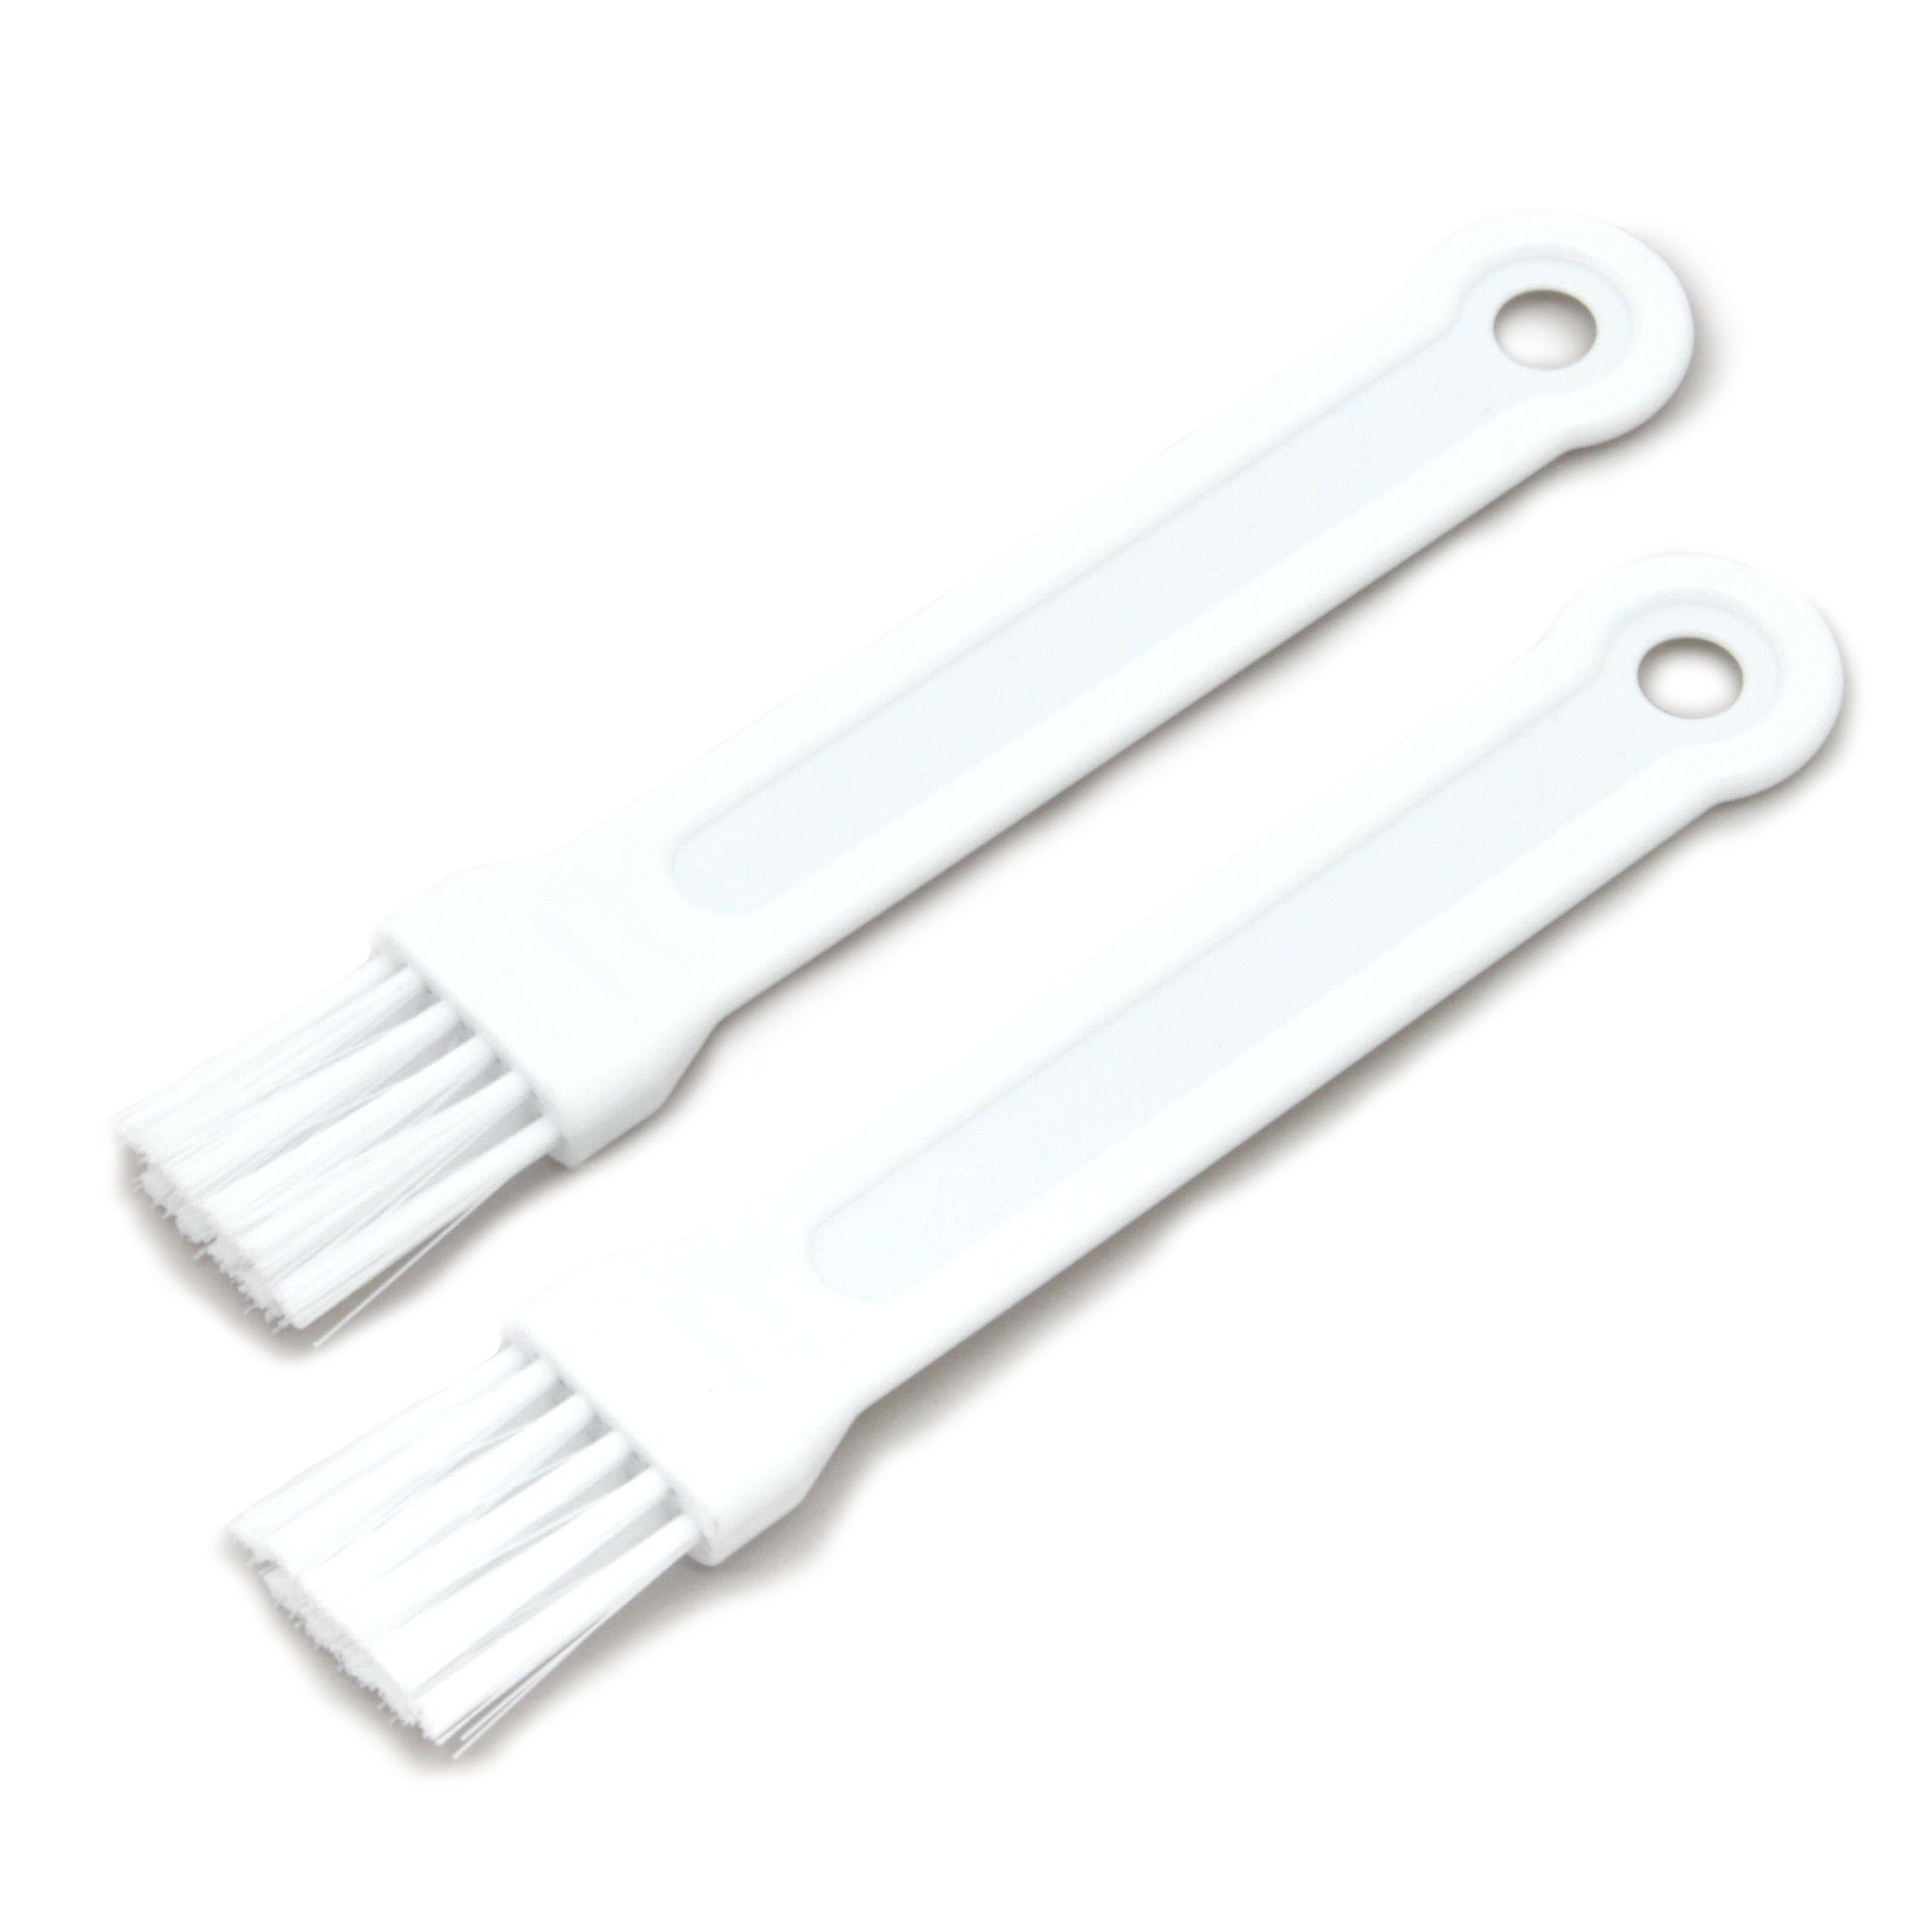 Chef Craft Mini Pastry Brush, White, 2-Pack 1 6.75 Inch in length Easy to clean Bastes in a similar fashion to traditional boar bristle brushes